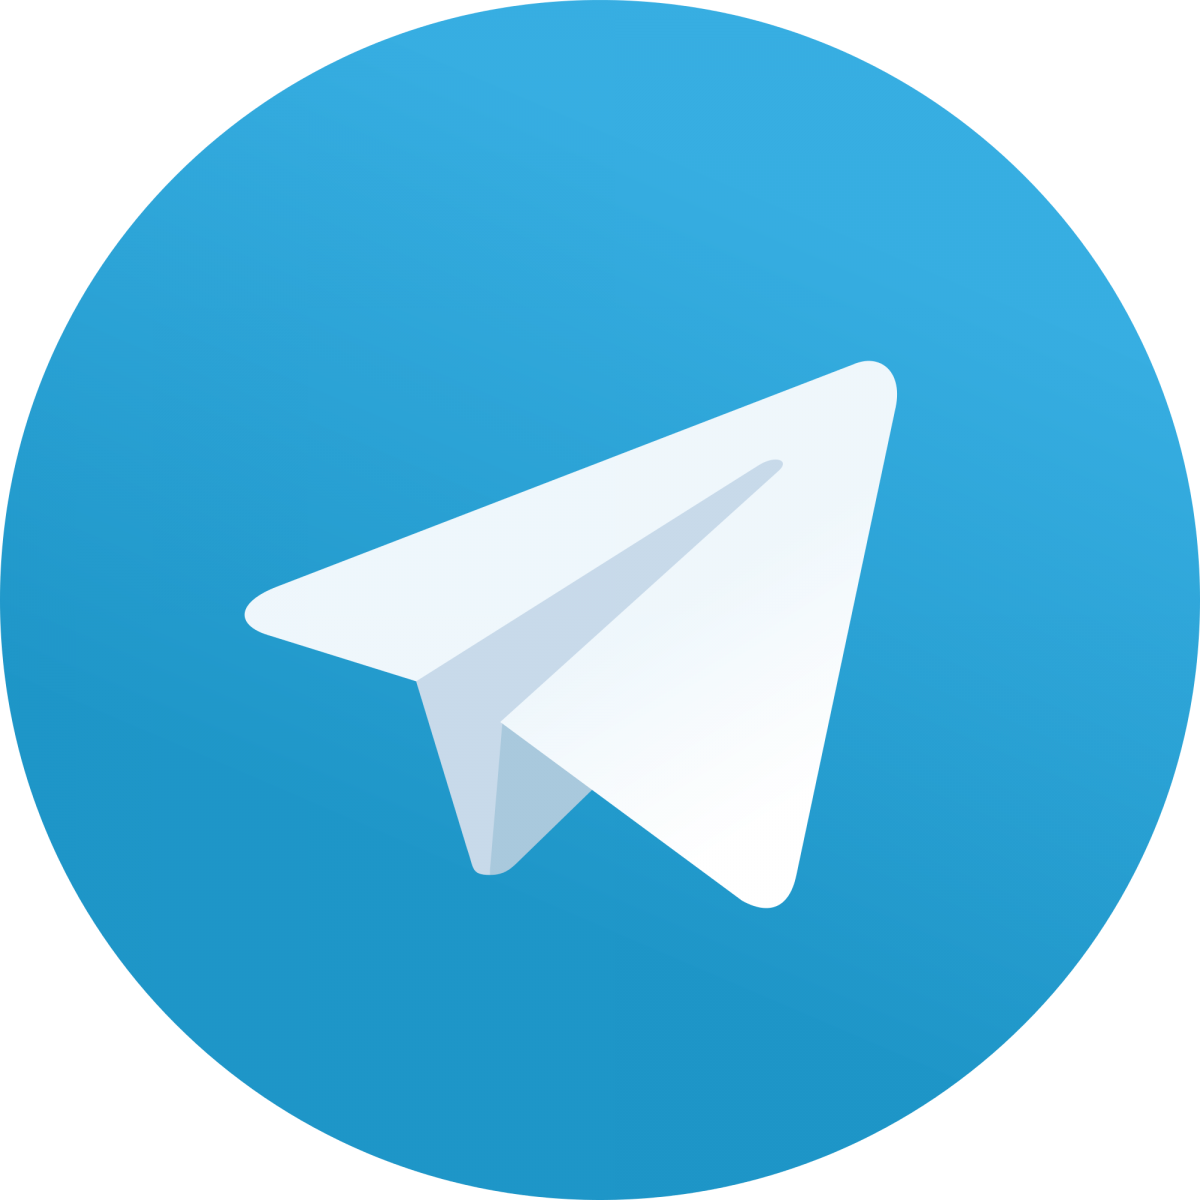 http://s1.picofile.com/file/8283977350/Telegram_logo_svg.png